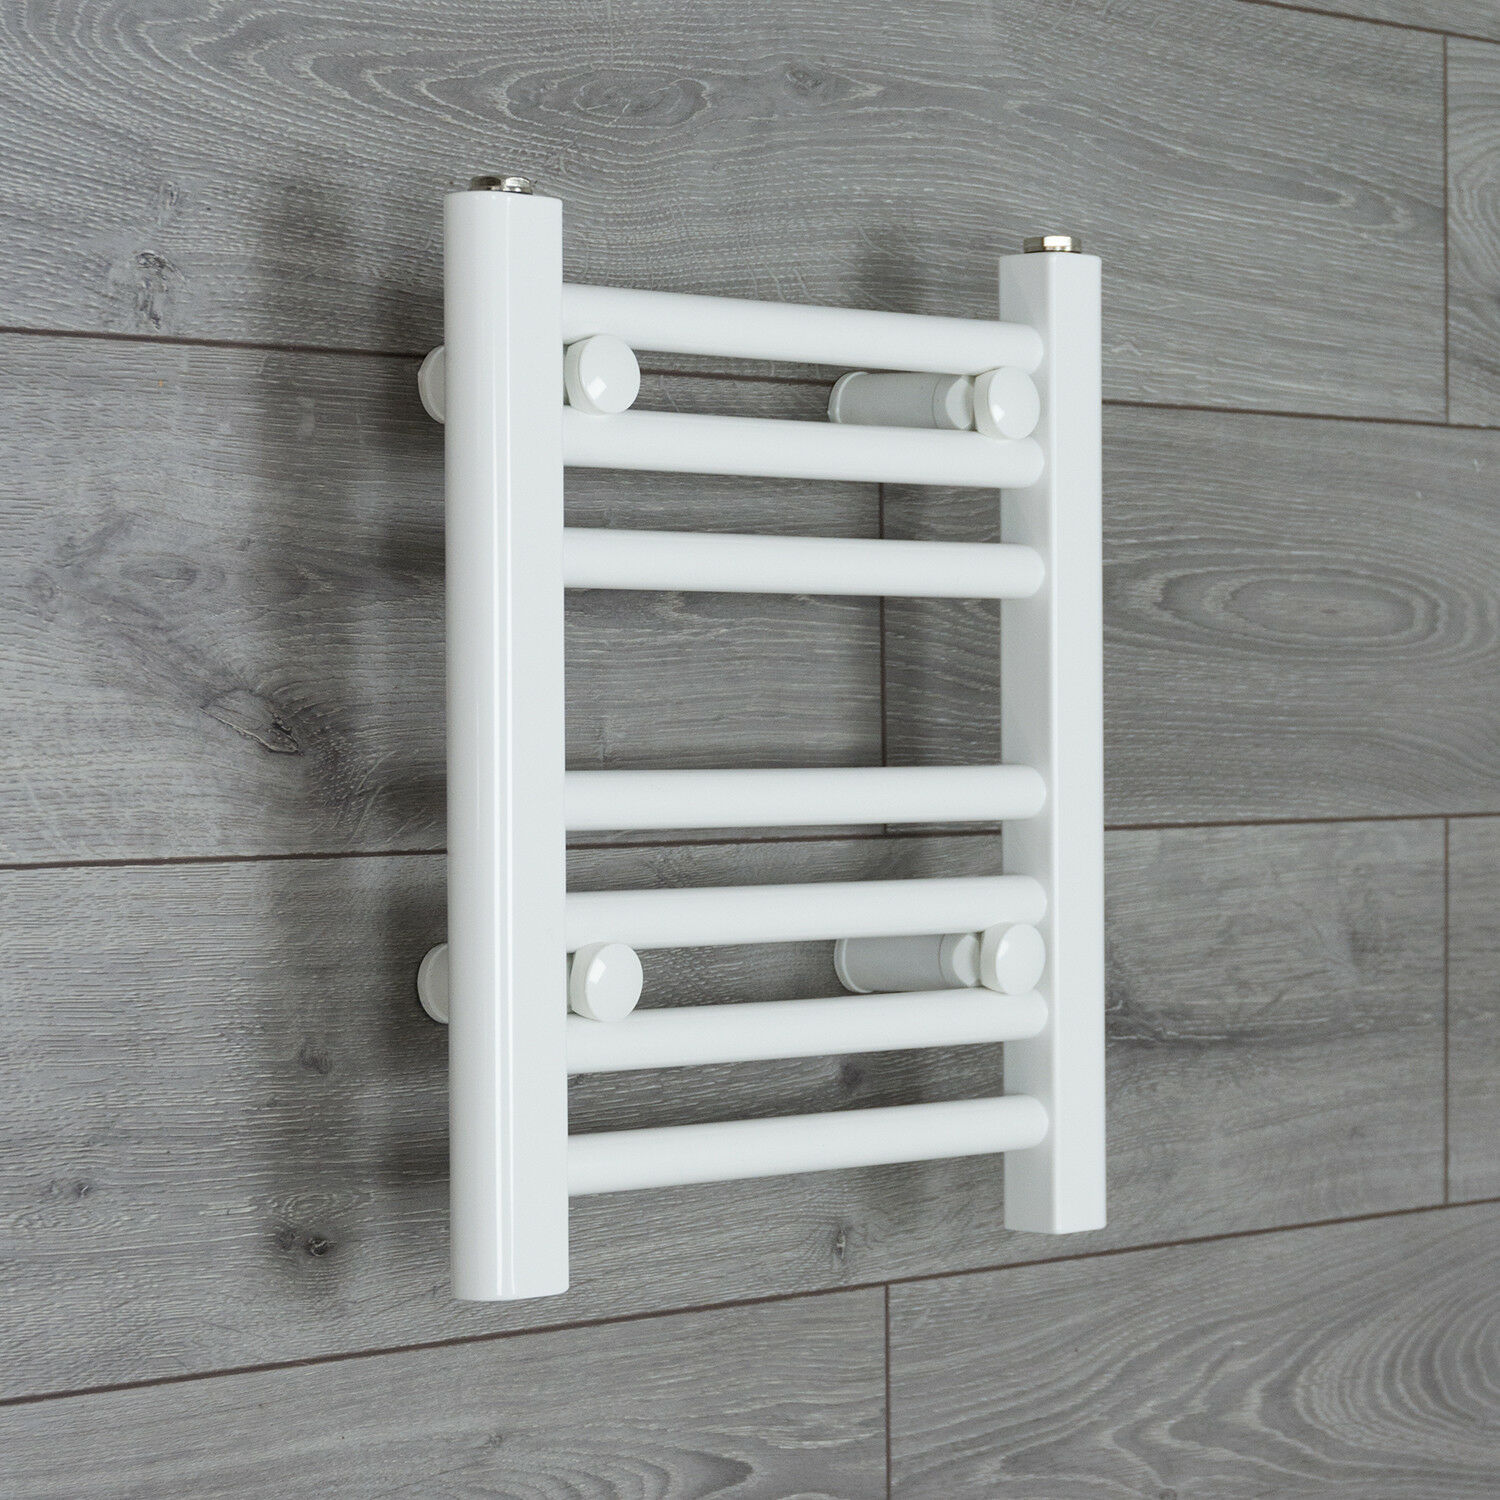 White Electric Towel Rails White Electric Bathroom Towel: 350 Mm Wide White Ladder Heated Towel Rail Radiator